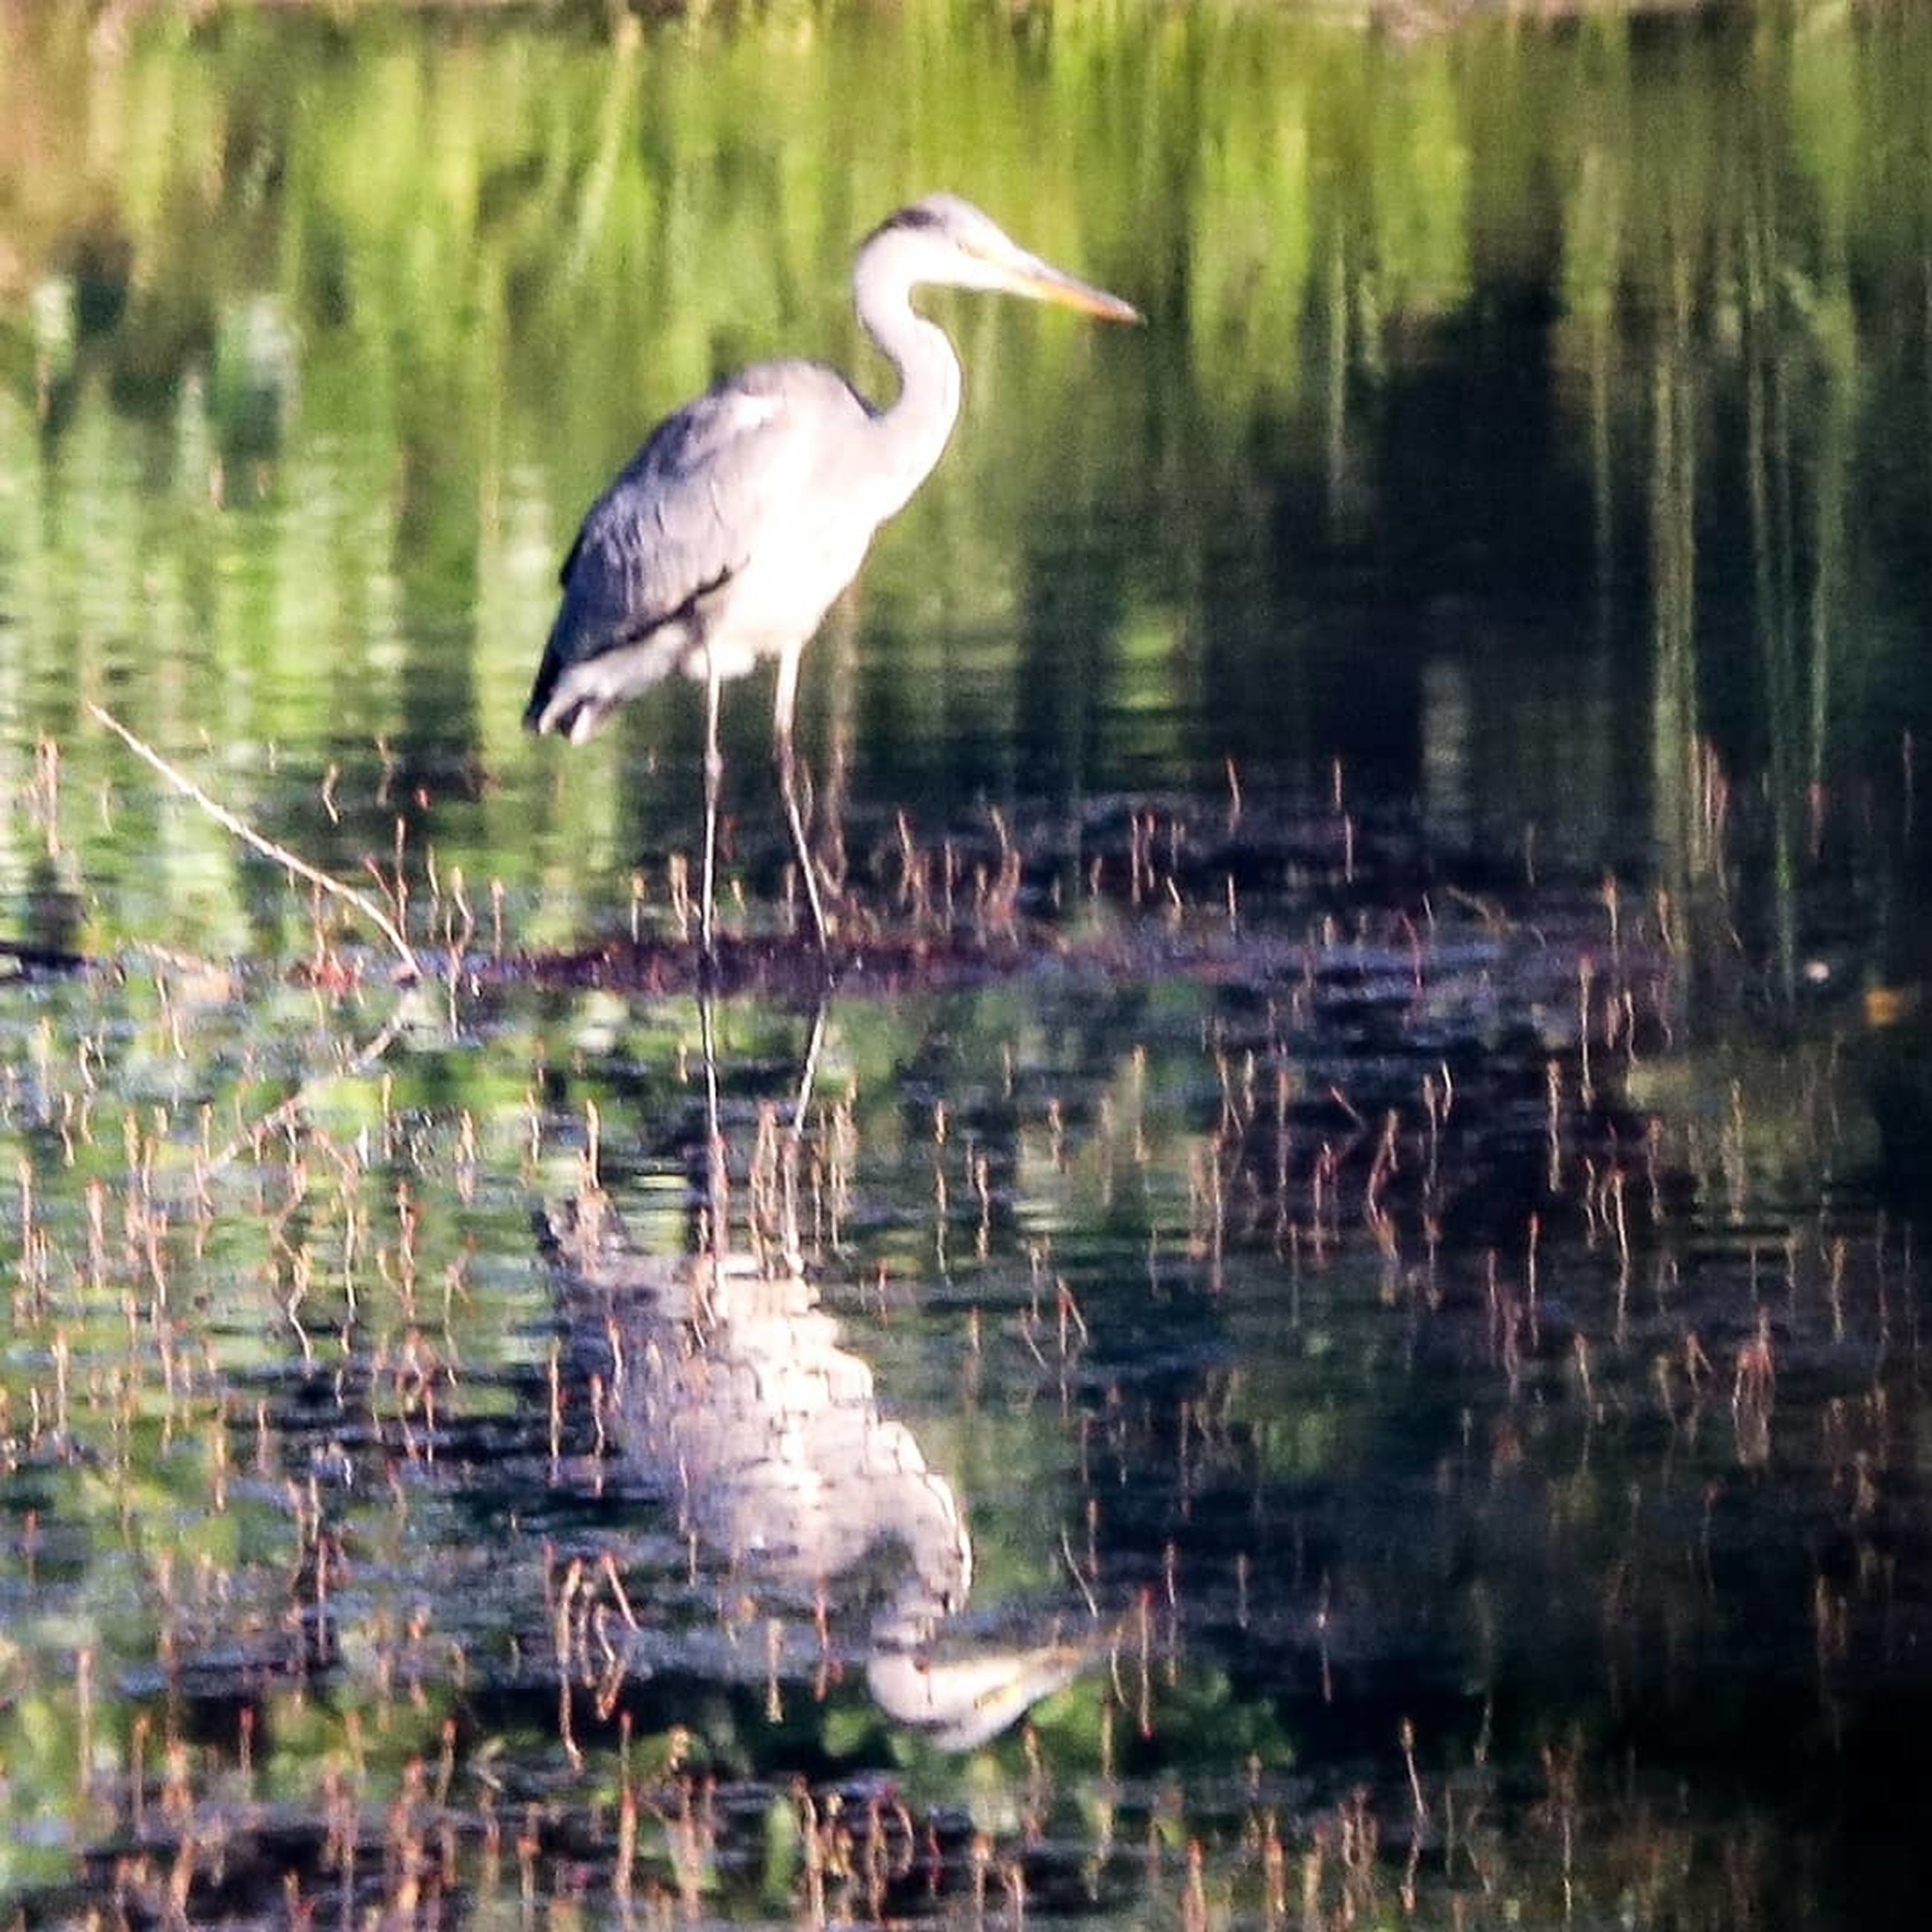 animal themes, animal, animal wildlife, animals in the wild, bird, water, one animal, reflection, vertebrate, lake, heron, day, nature, no people, water bird, selective focus, outdoors, wading, perching, stork, swamp, profile view